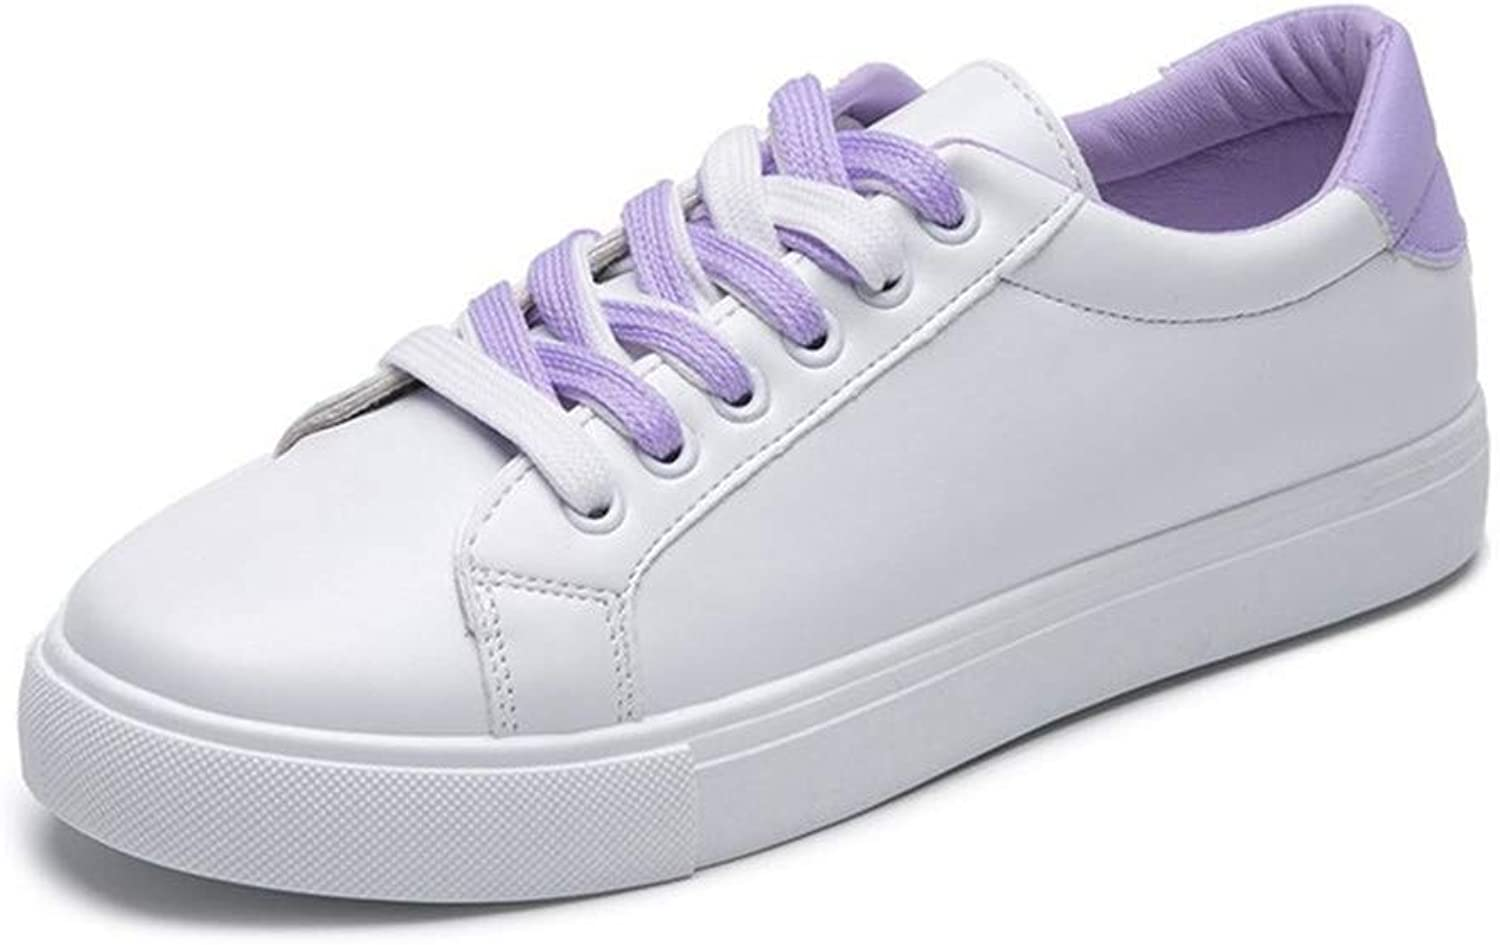 LUOBM Old shoes Sports Retro Casual Fashion shoes Women